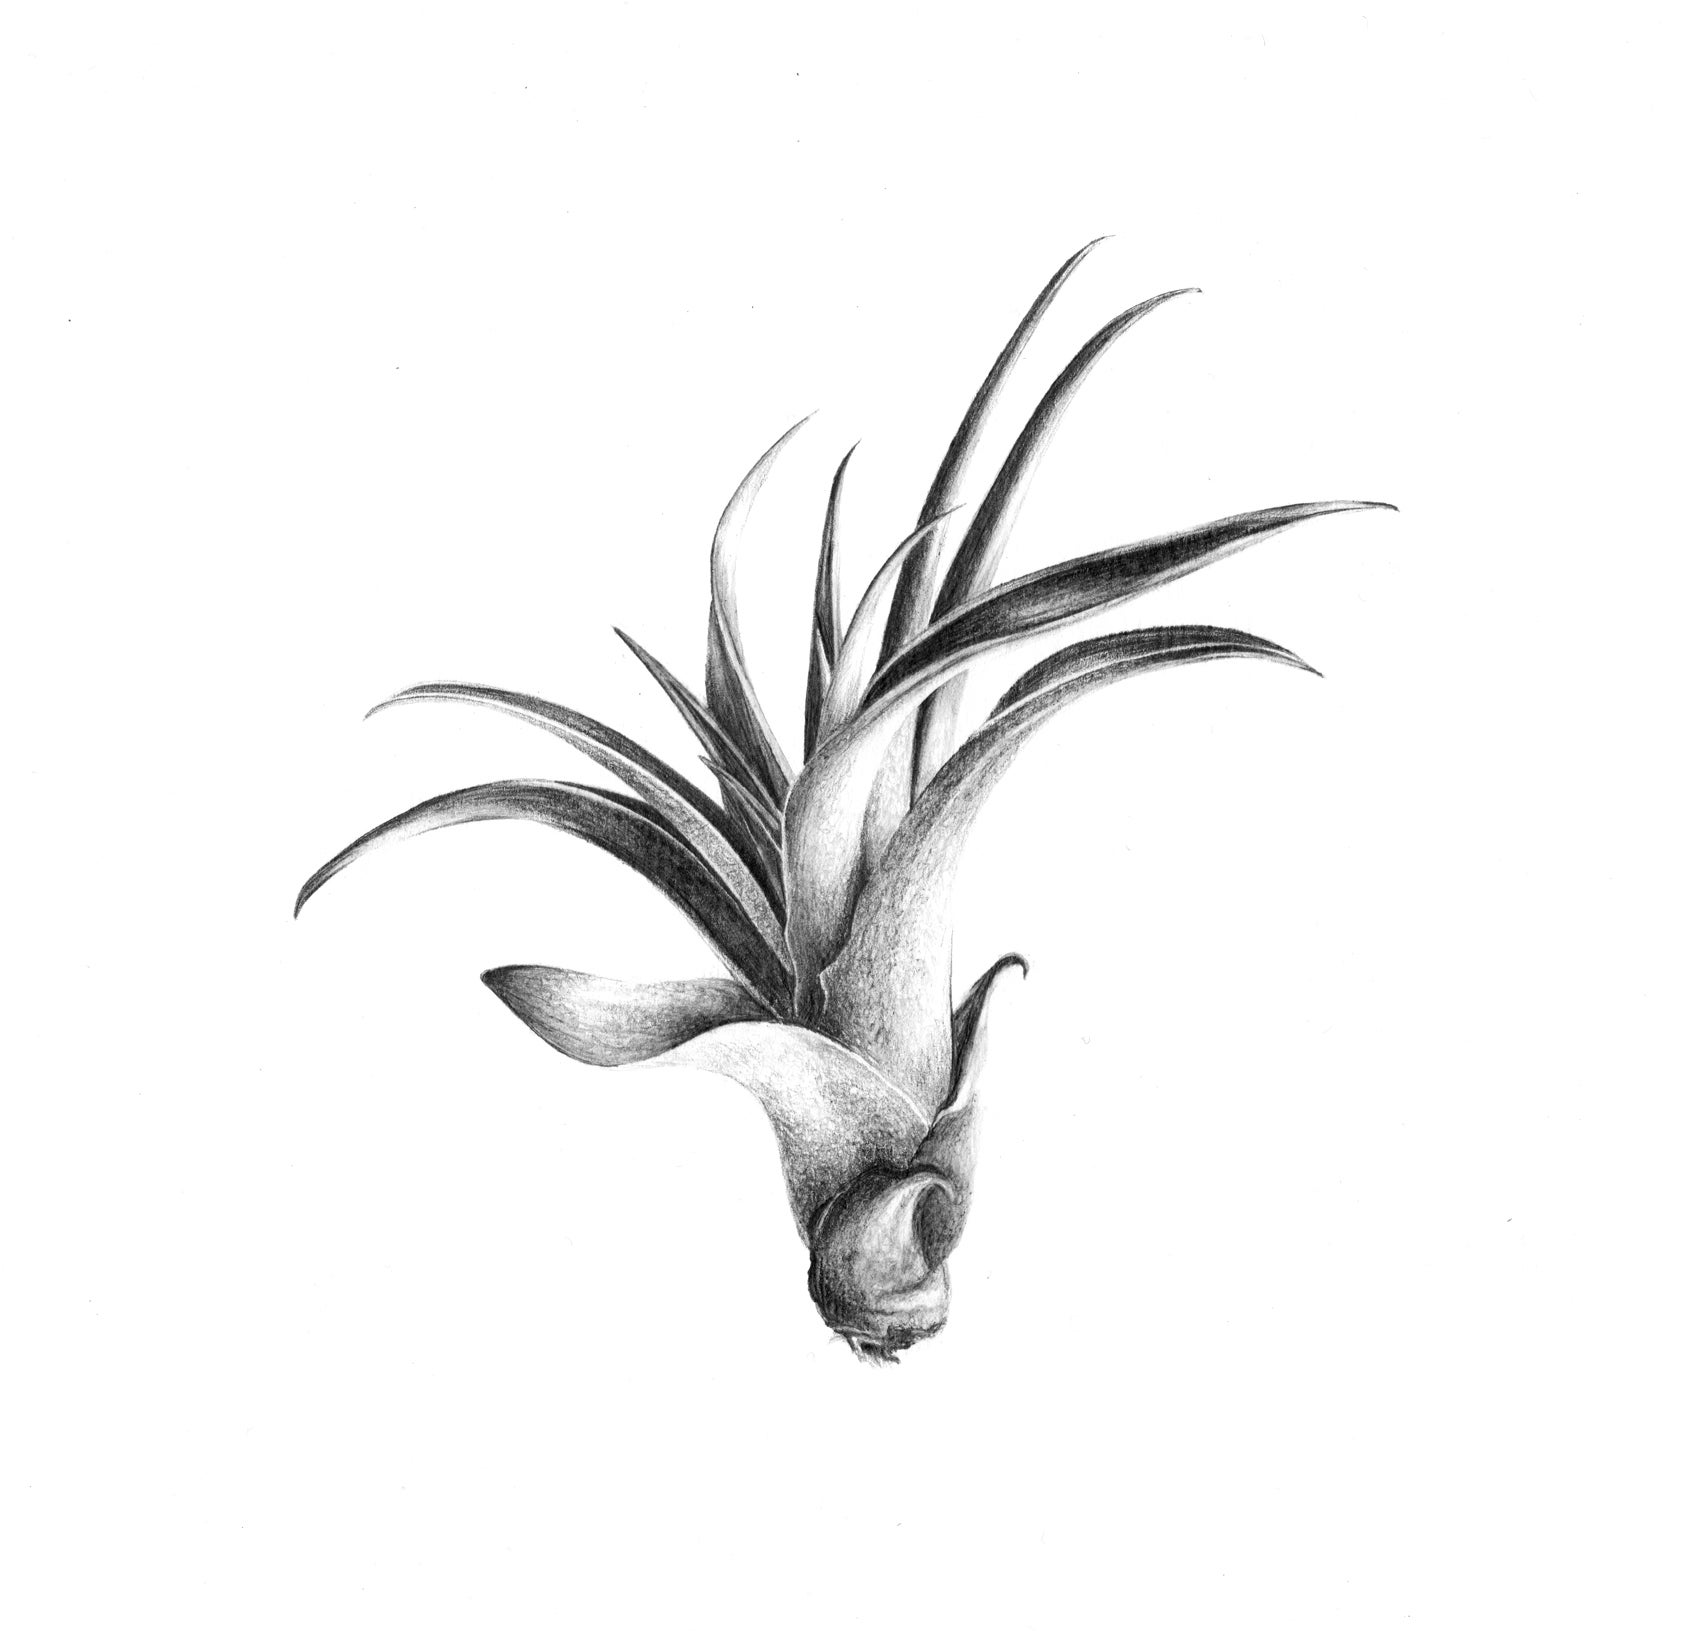 Image of Tillandsia Capitata n°1